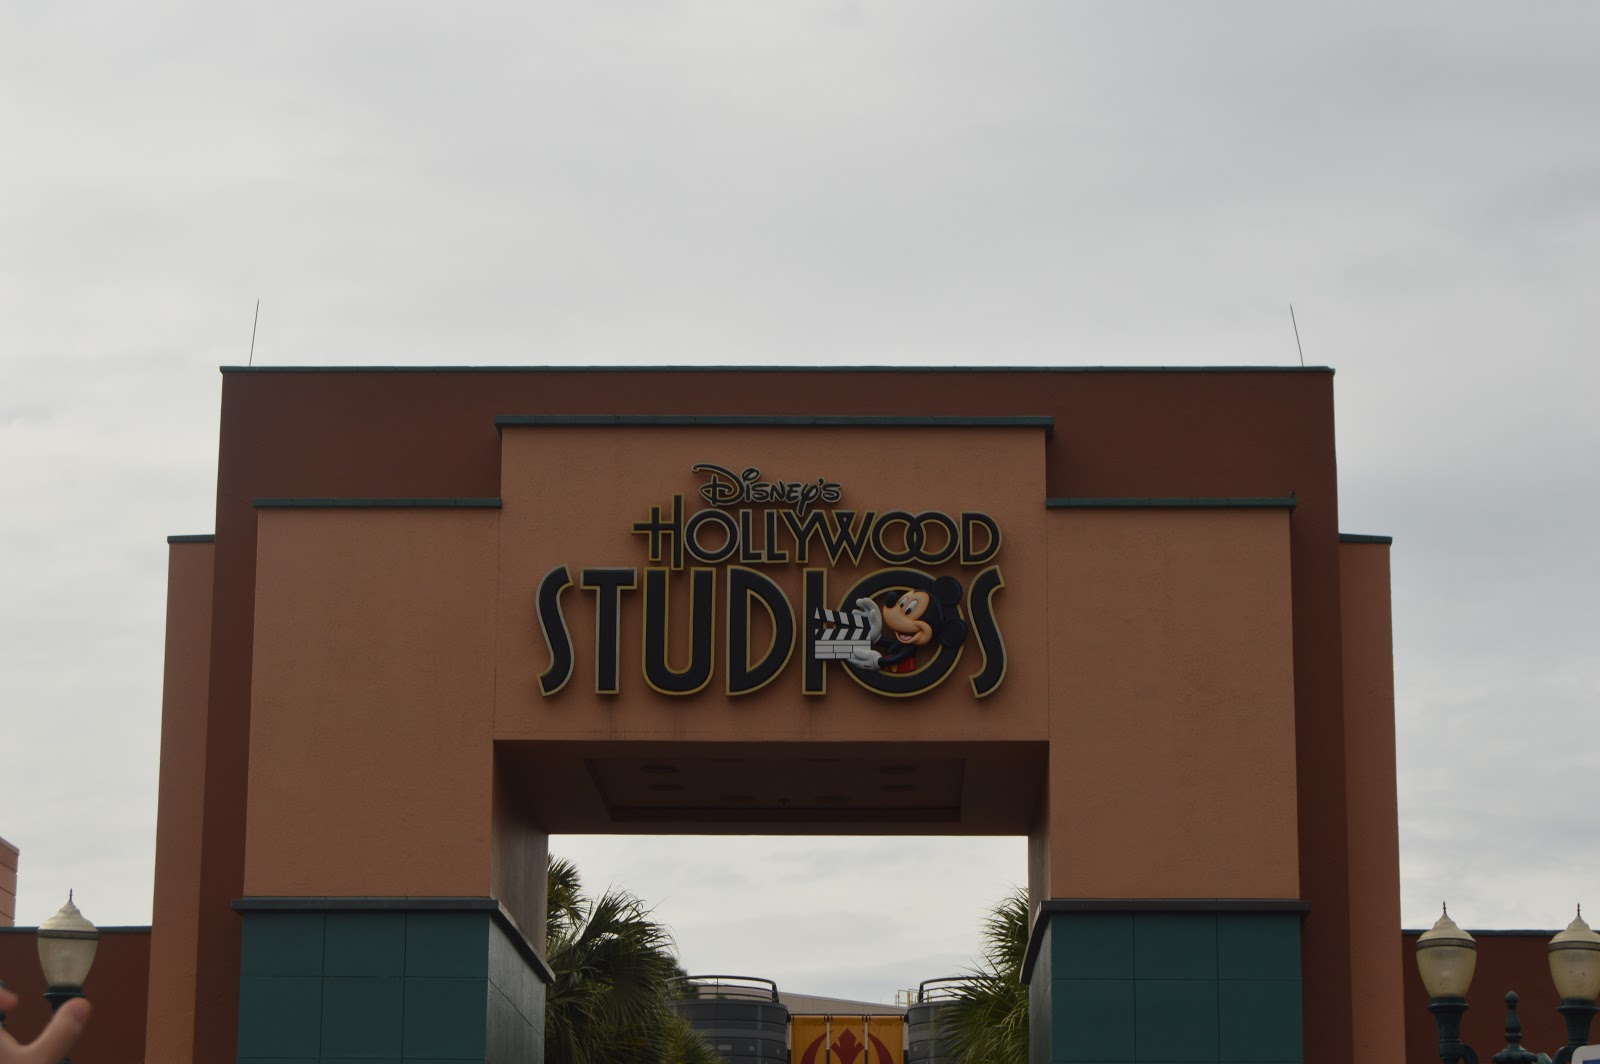 Hollywood Studios entrance